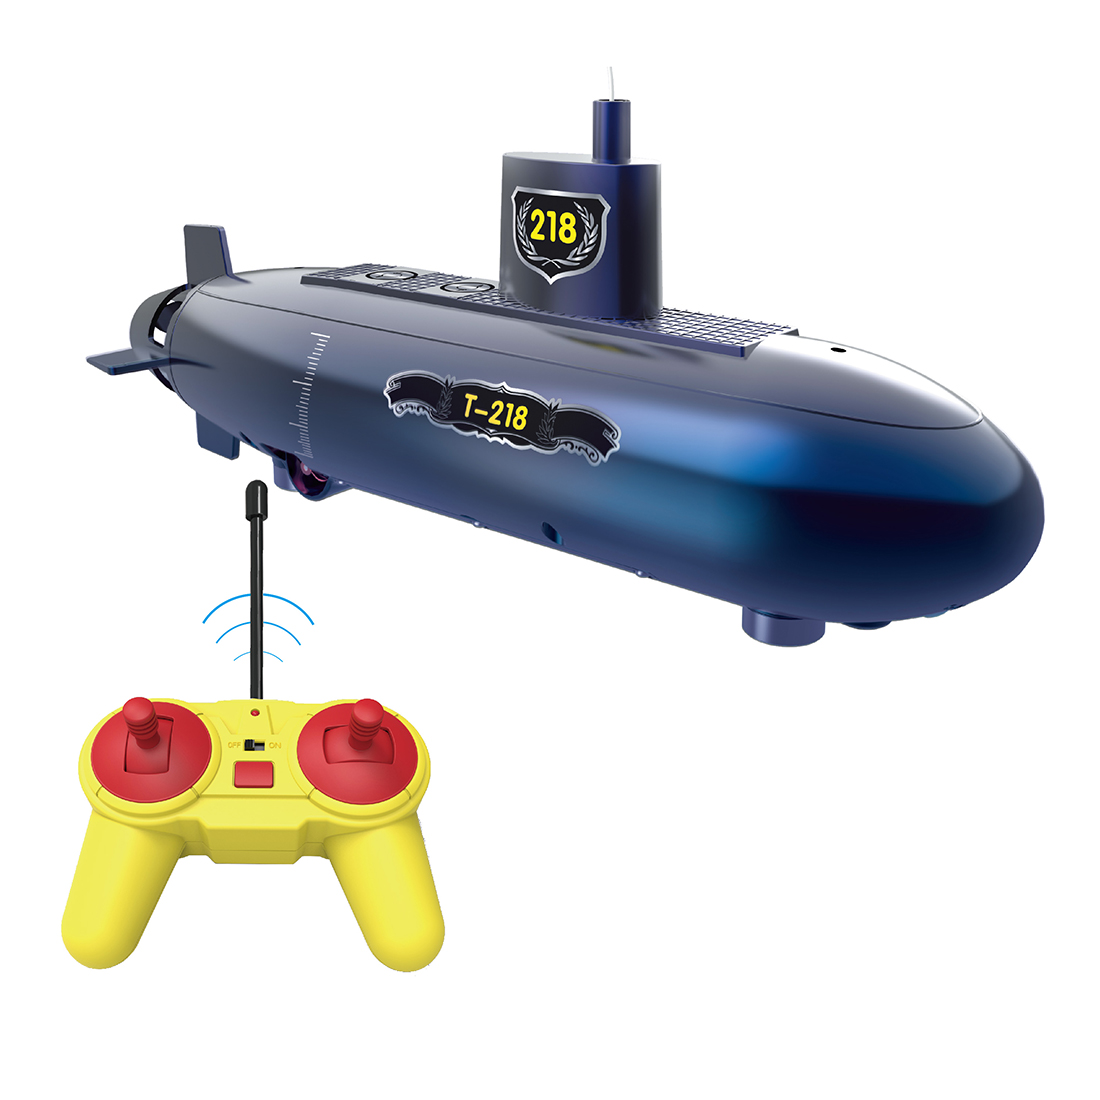 Funny RC Mini Submarine 6 Channels Remote Control Under Water Ship RC Boat Model Kids Educational Stem Toy Gift For Children image